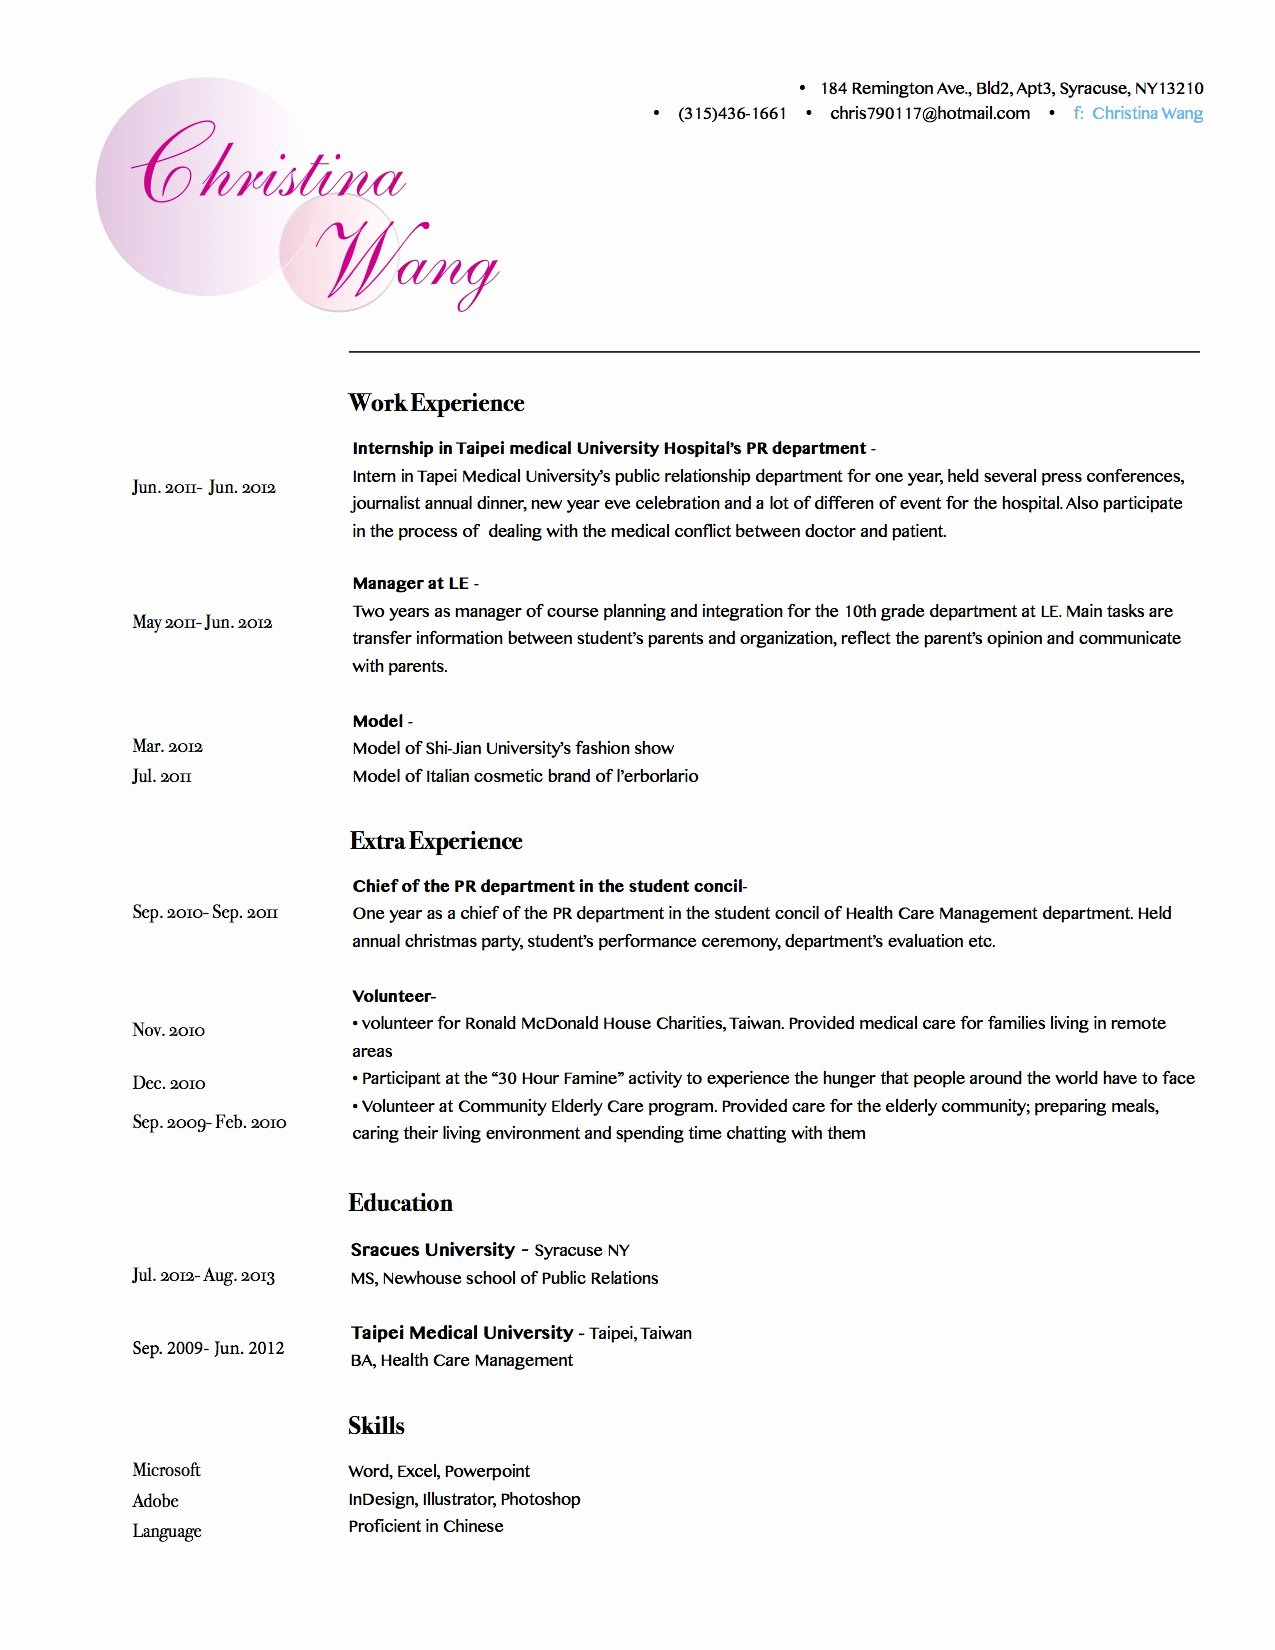 Makeup Artist Bio Sample Awesome Christina Wang's Resume